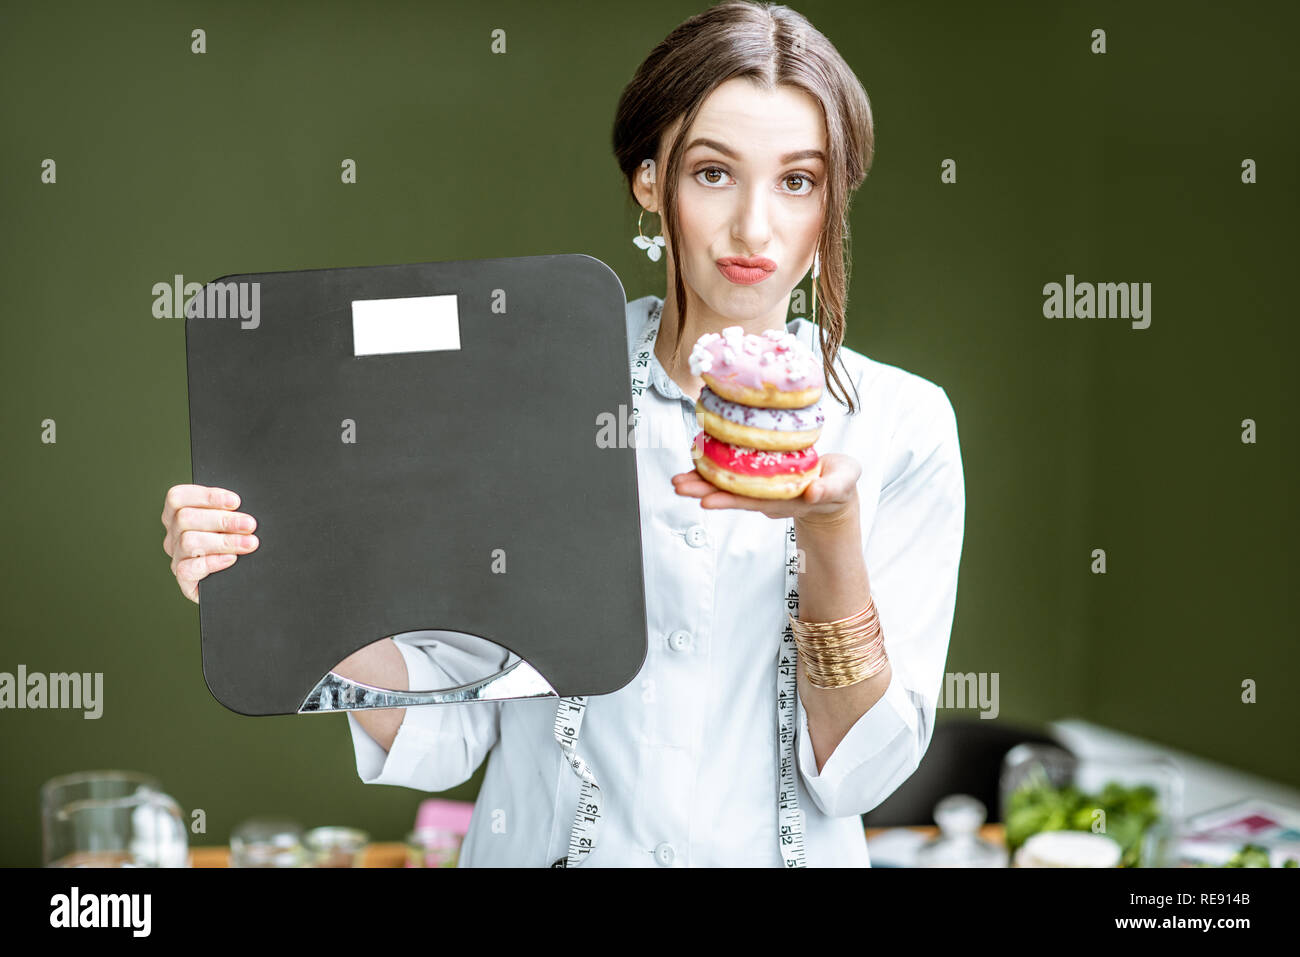 Portrait of a sad woman nutritionist in medical gown with donuts and weights on the green background. Unhealthy eating and adiposity concept - Stock Image